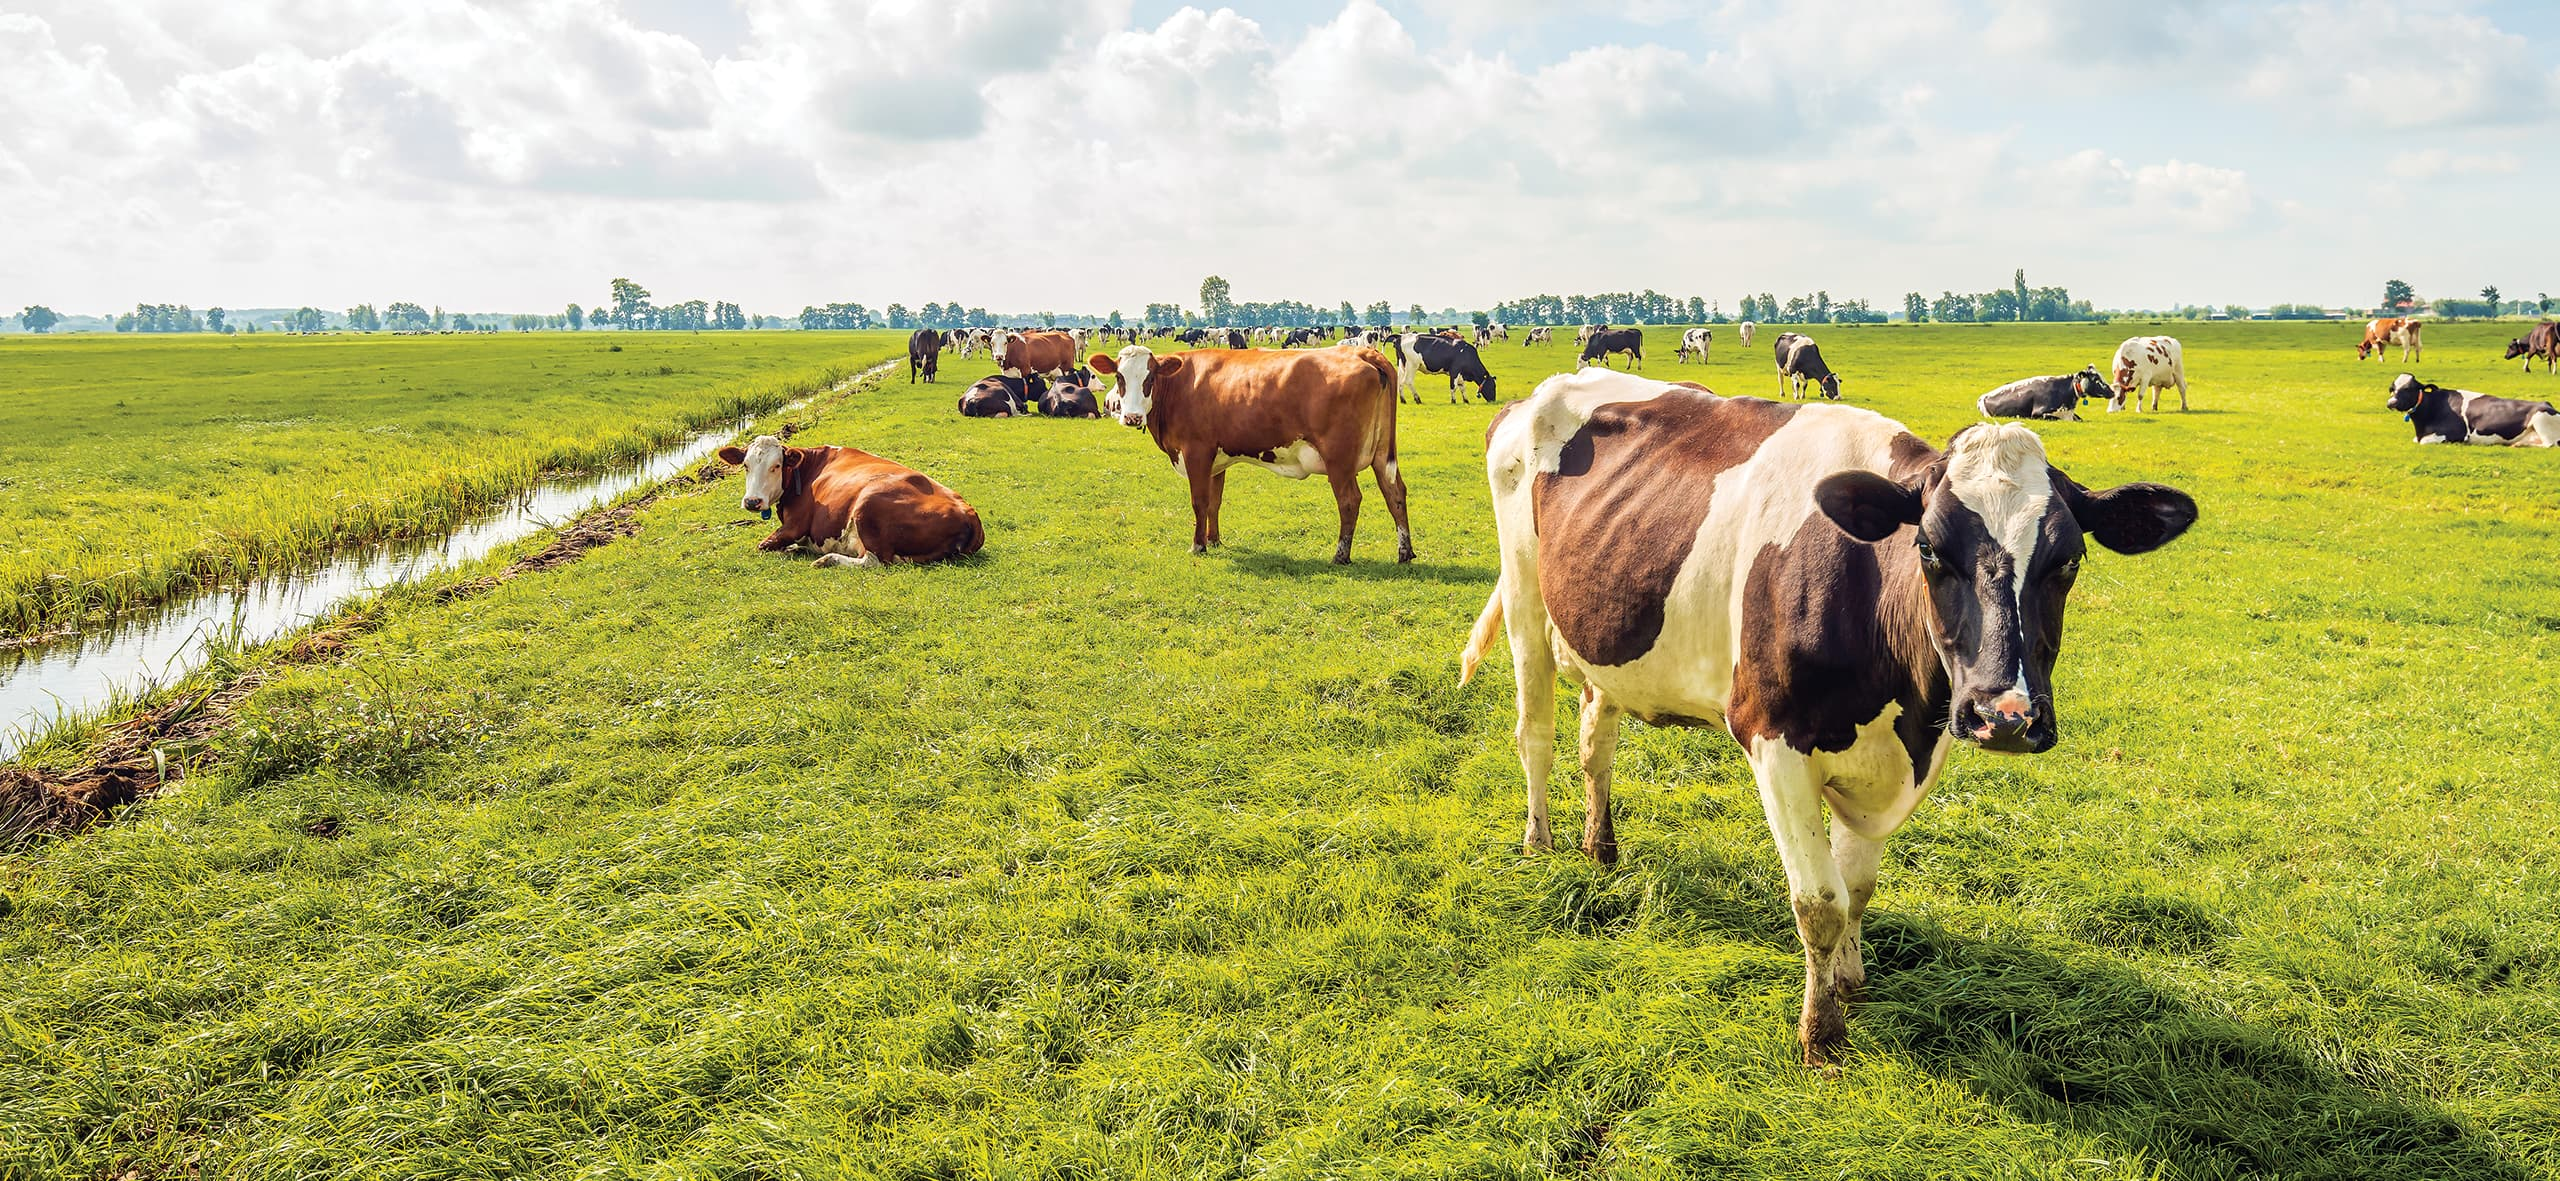 Safe Management Series: attention to animal health in cattle farming